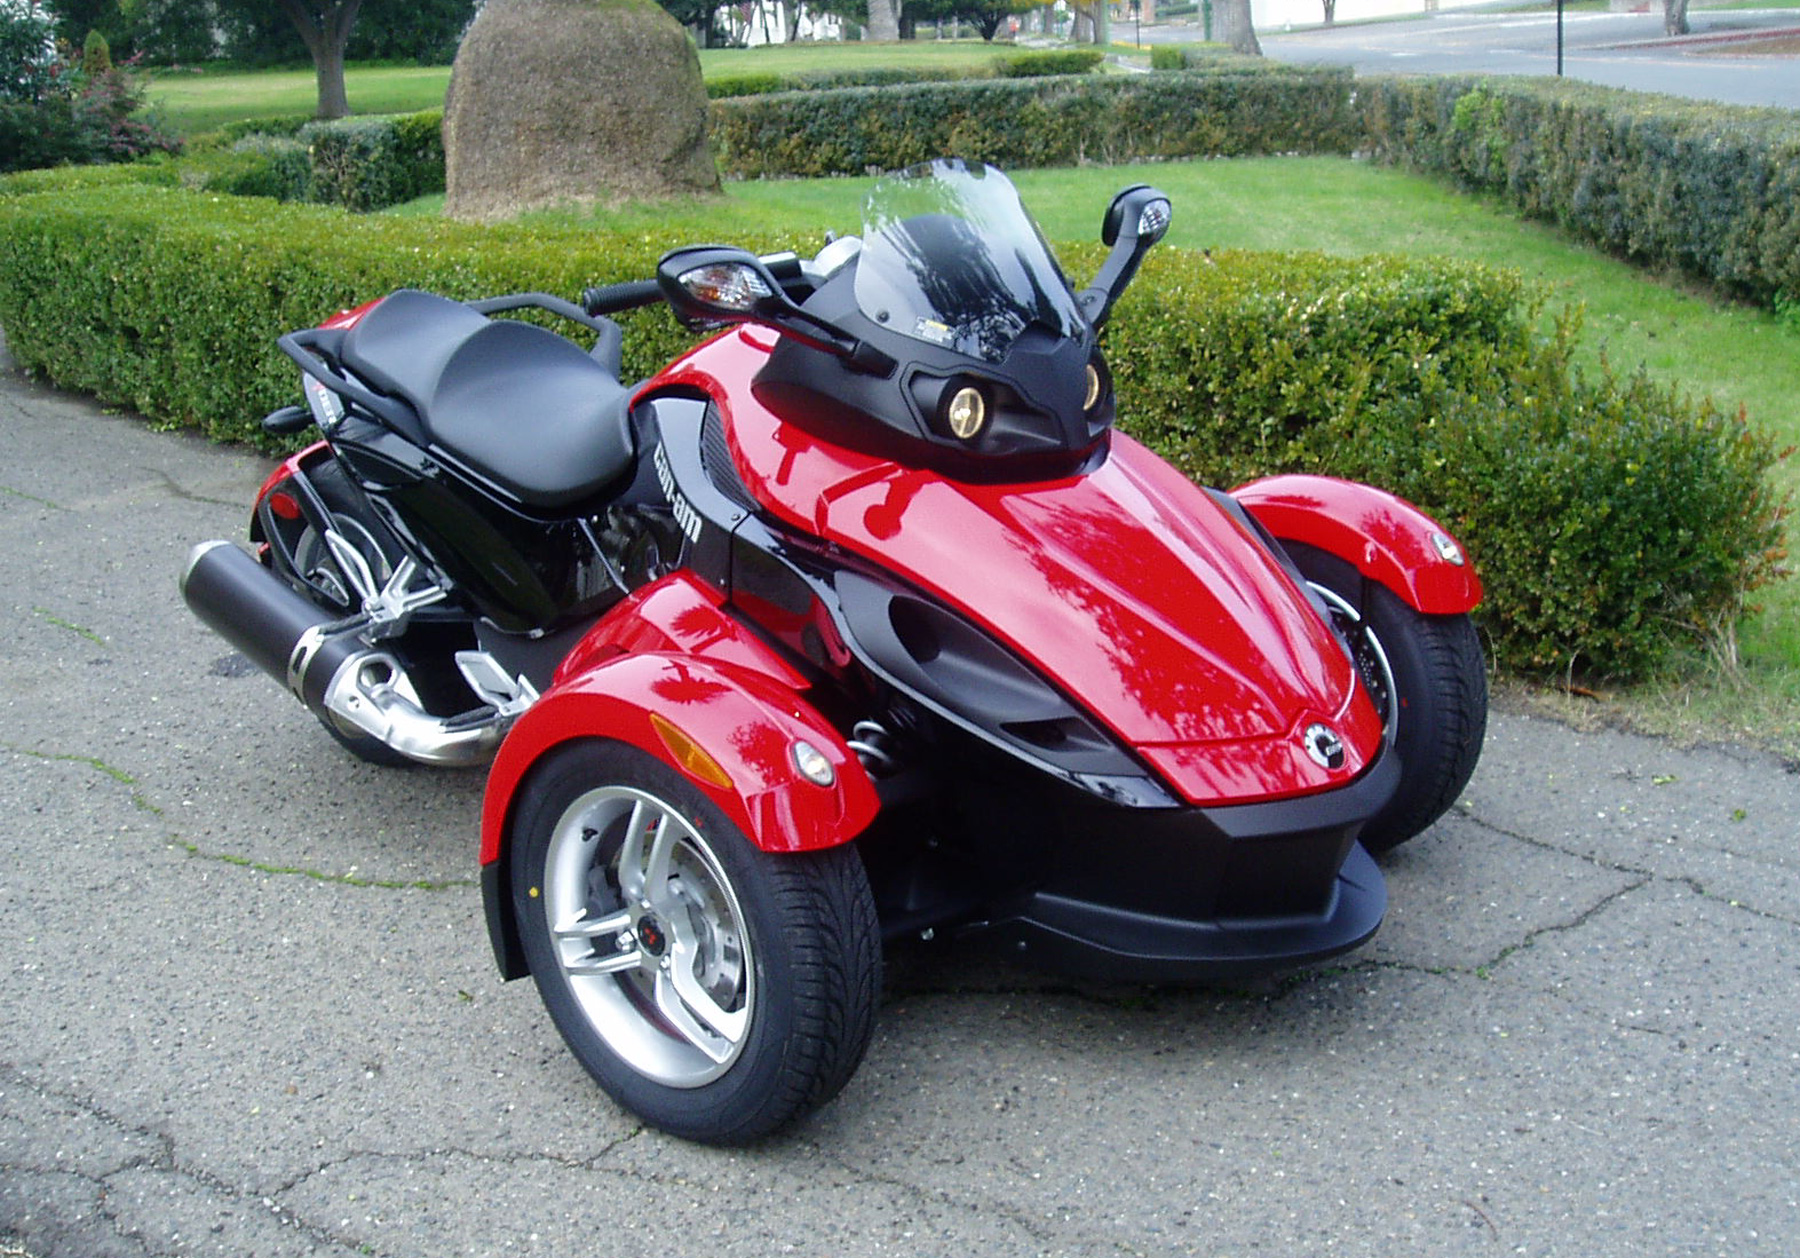 It S A Little Bit Motorcycle Trike And Roadster Is At Least In Spirit Concept Not Really